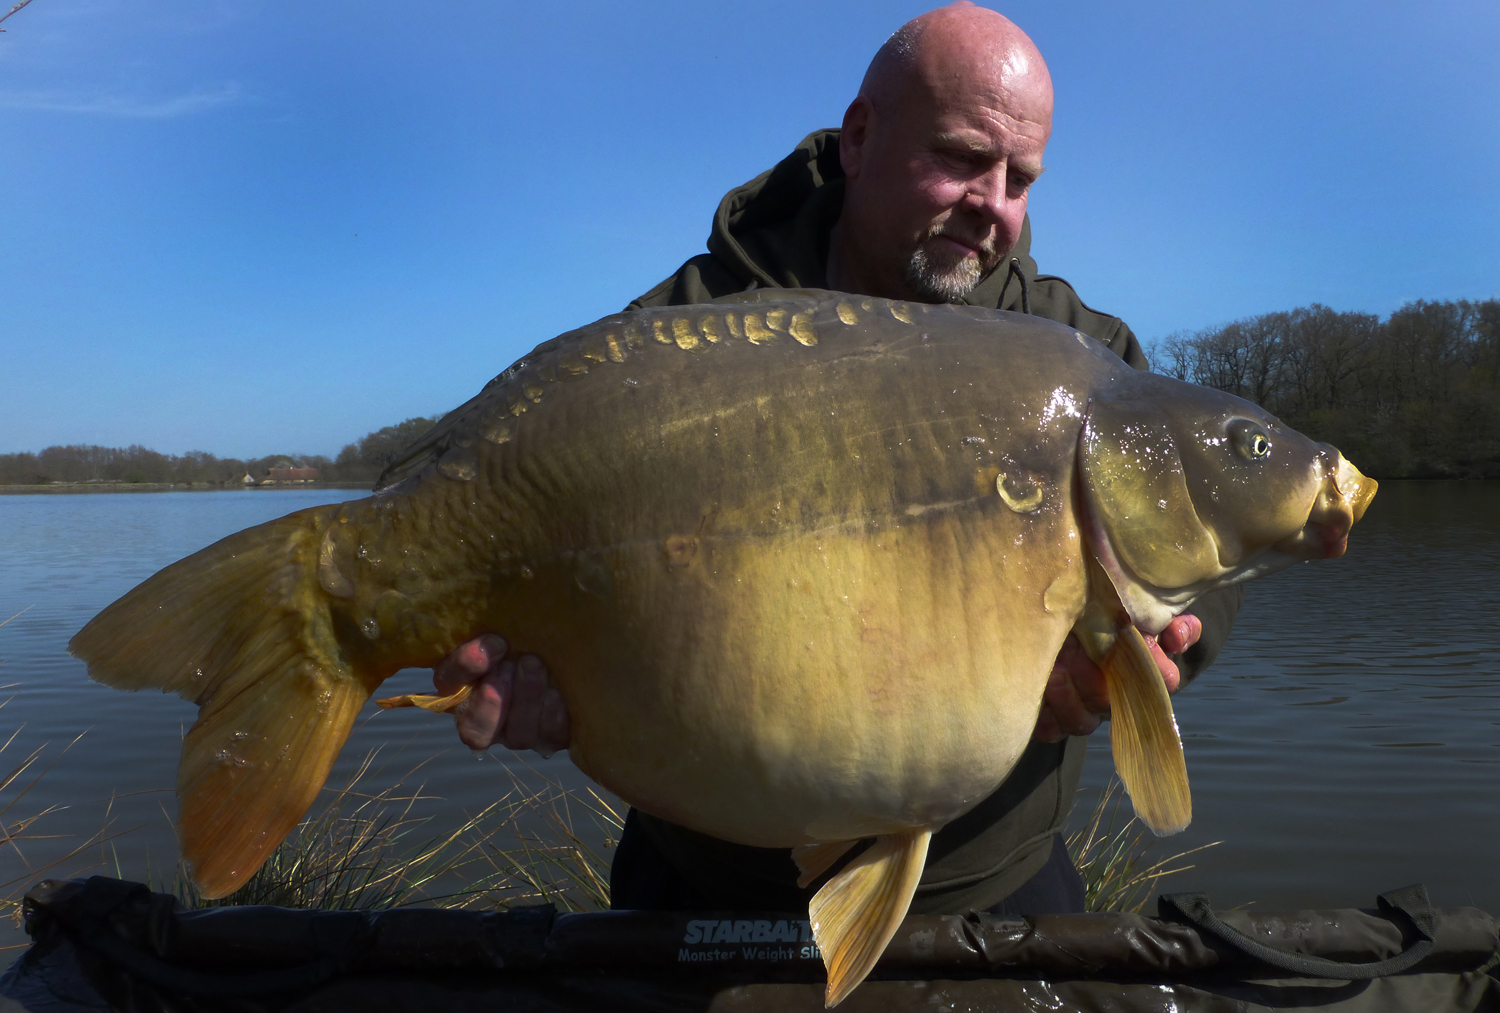 http://www.starbaits.com/fichiers/images/team/gallery/SUDRE_Bruno/1 (20).jpg